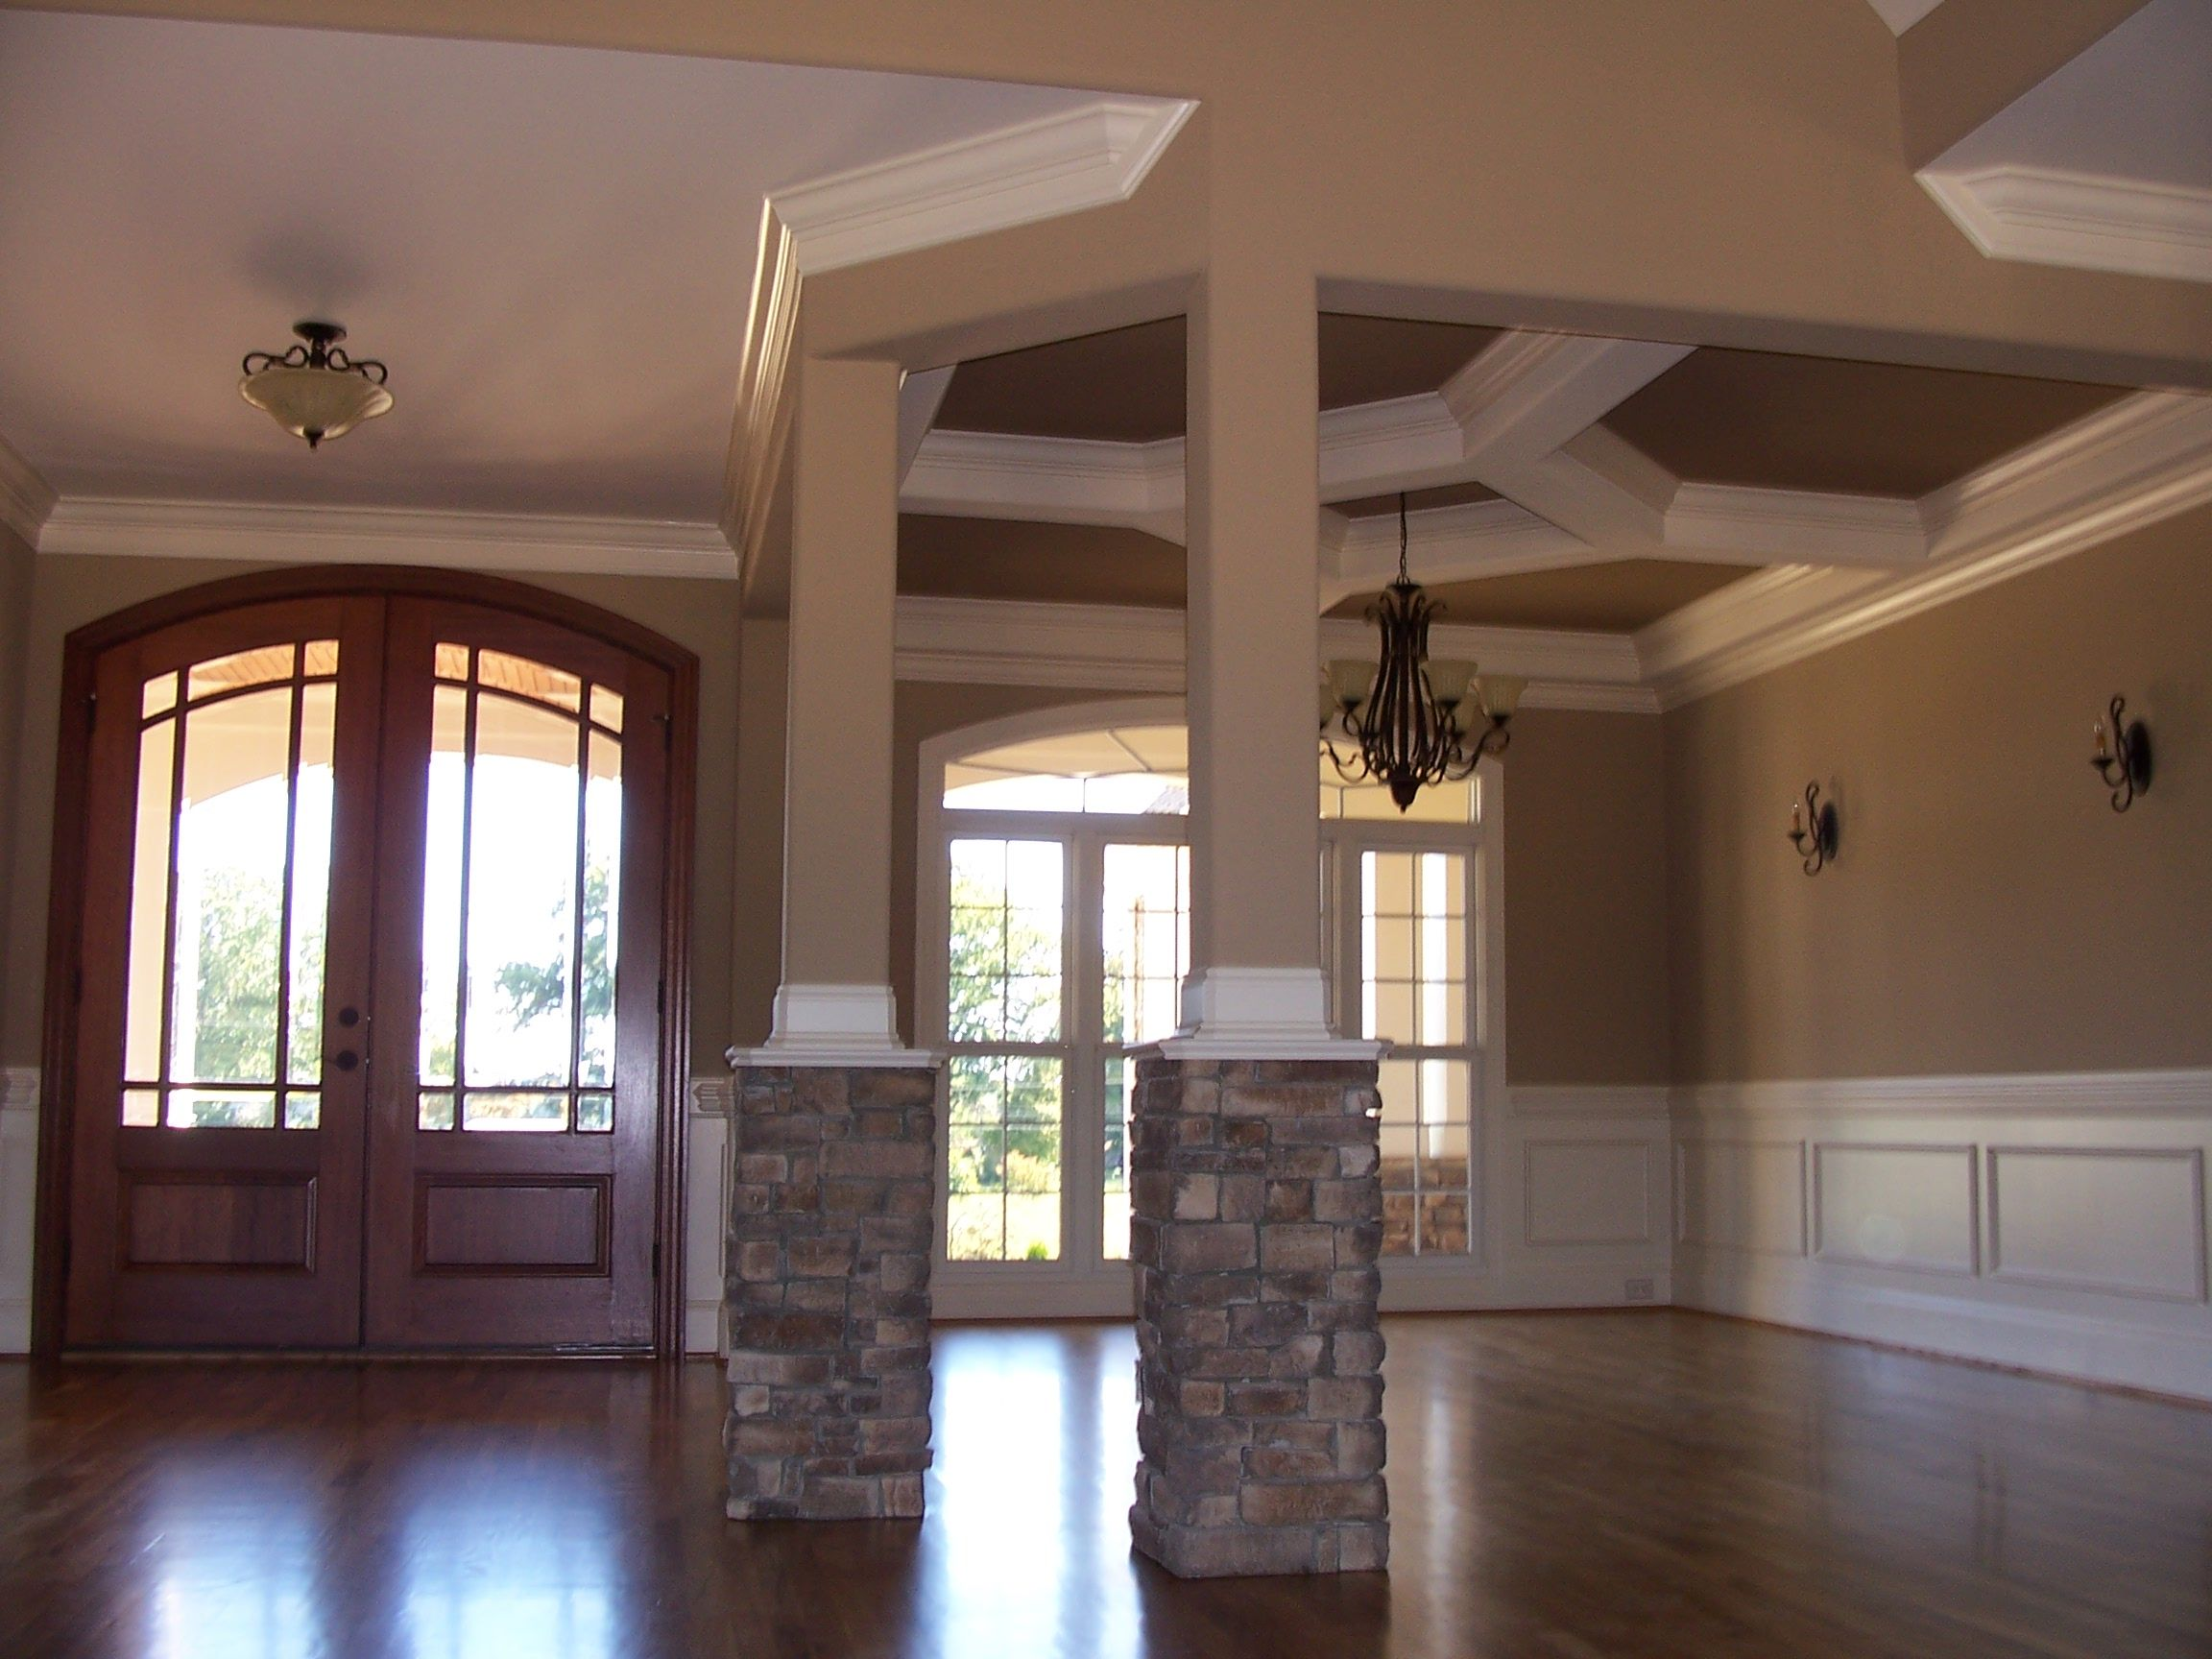 pictures of interior paint colors phone 704 746 8170 on interior house color ideas id=86893